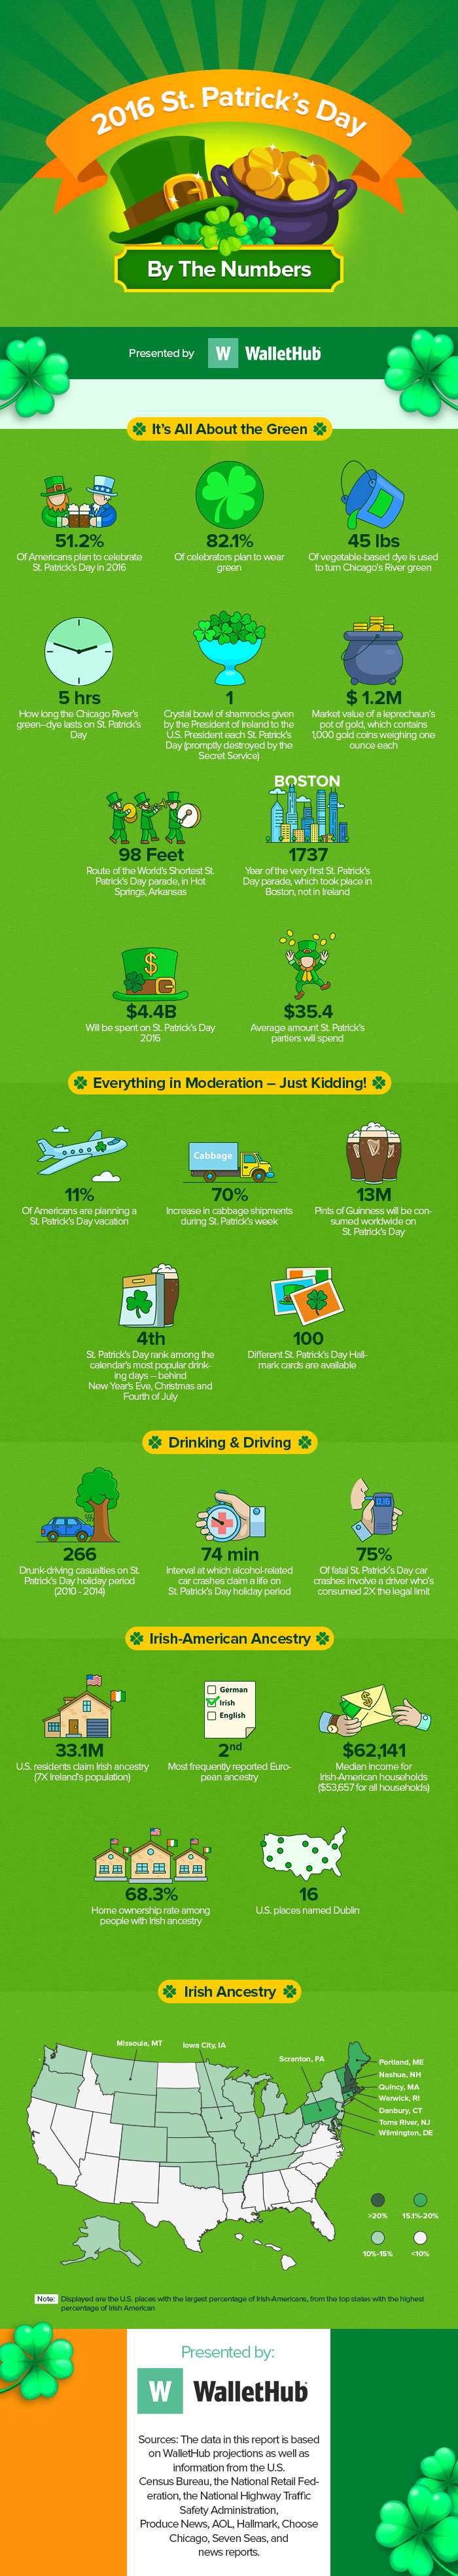 st.-patricks-day-by-the-numbers